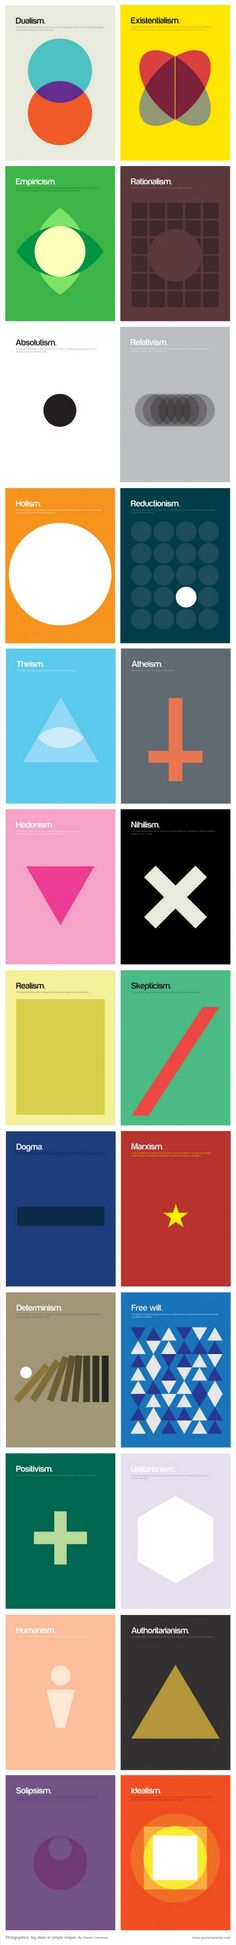 Philographics  big ideas in simple shapes. By Genis Carreras. remember to follow